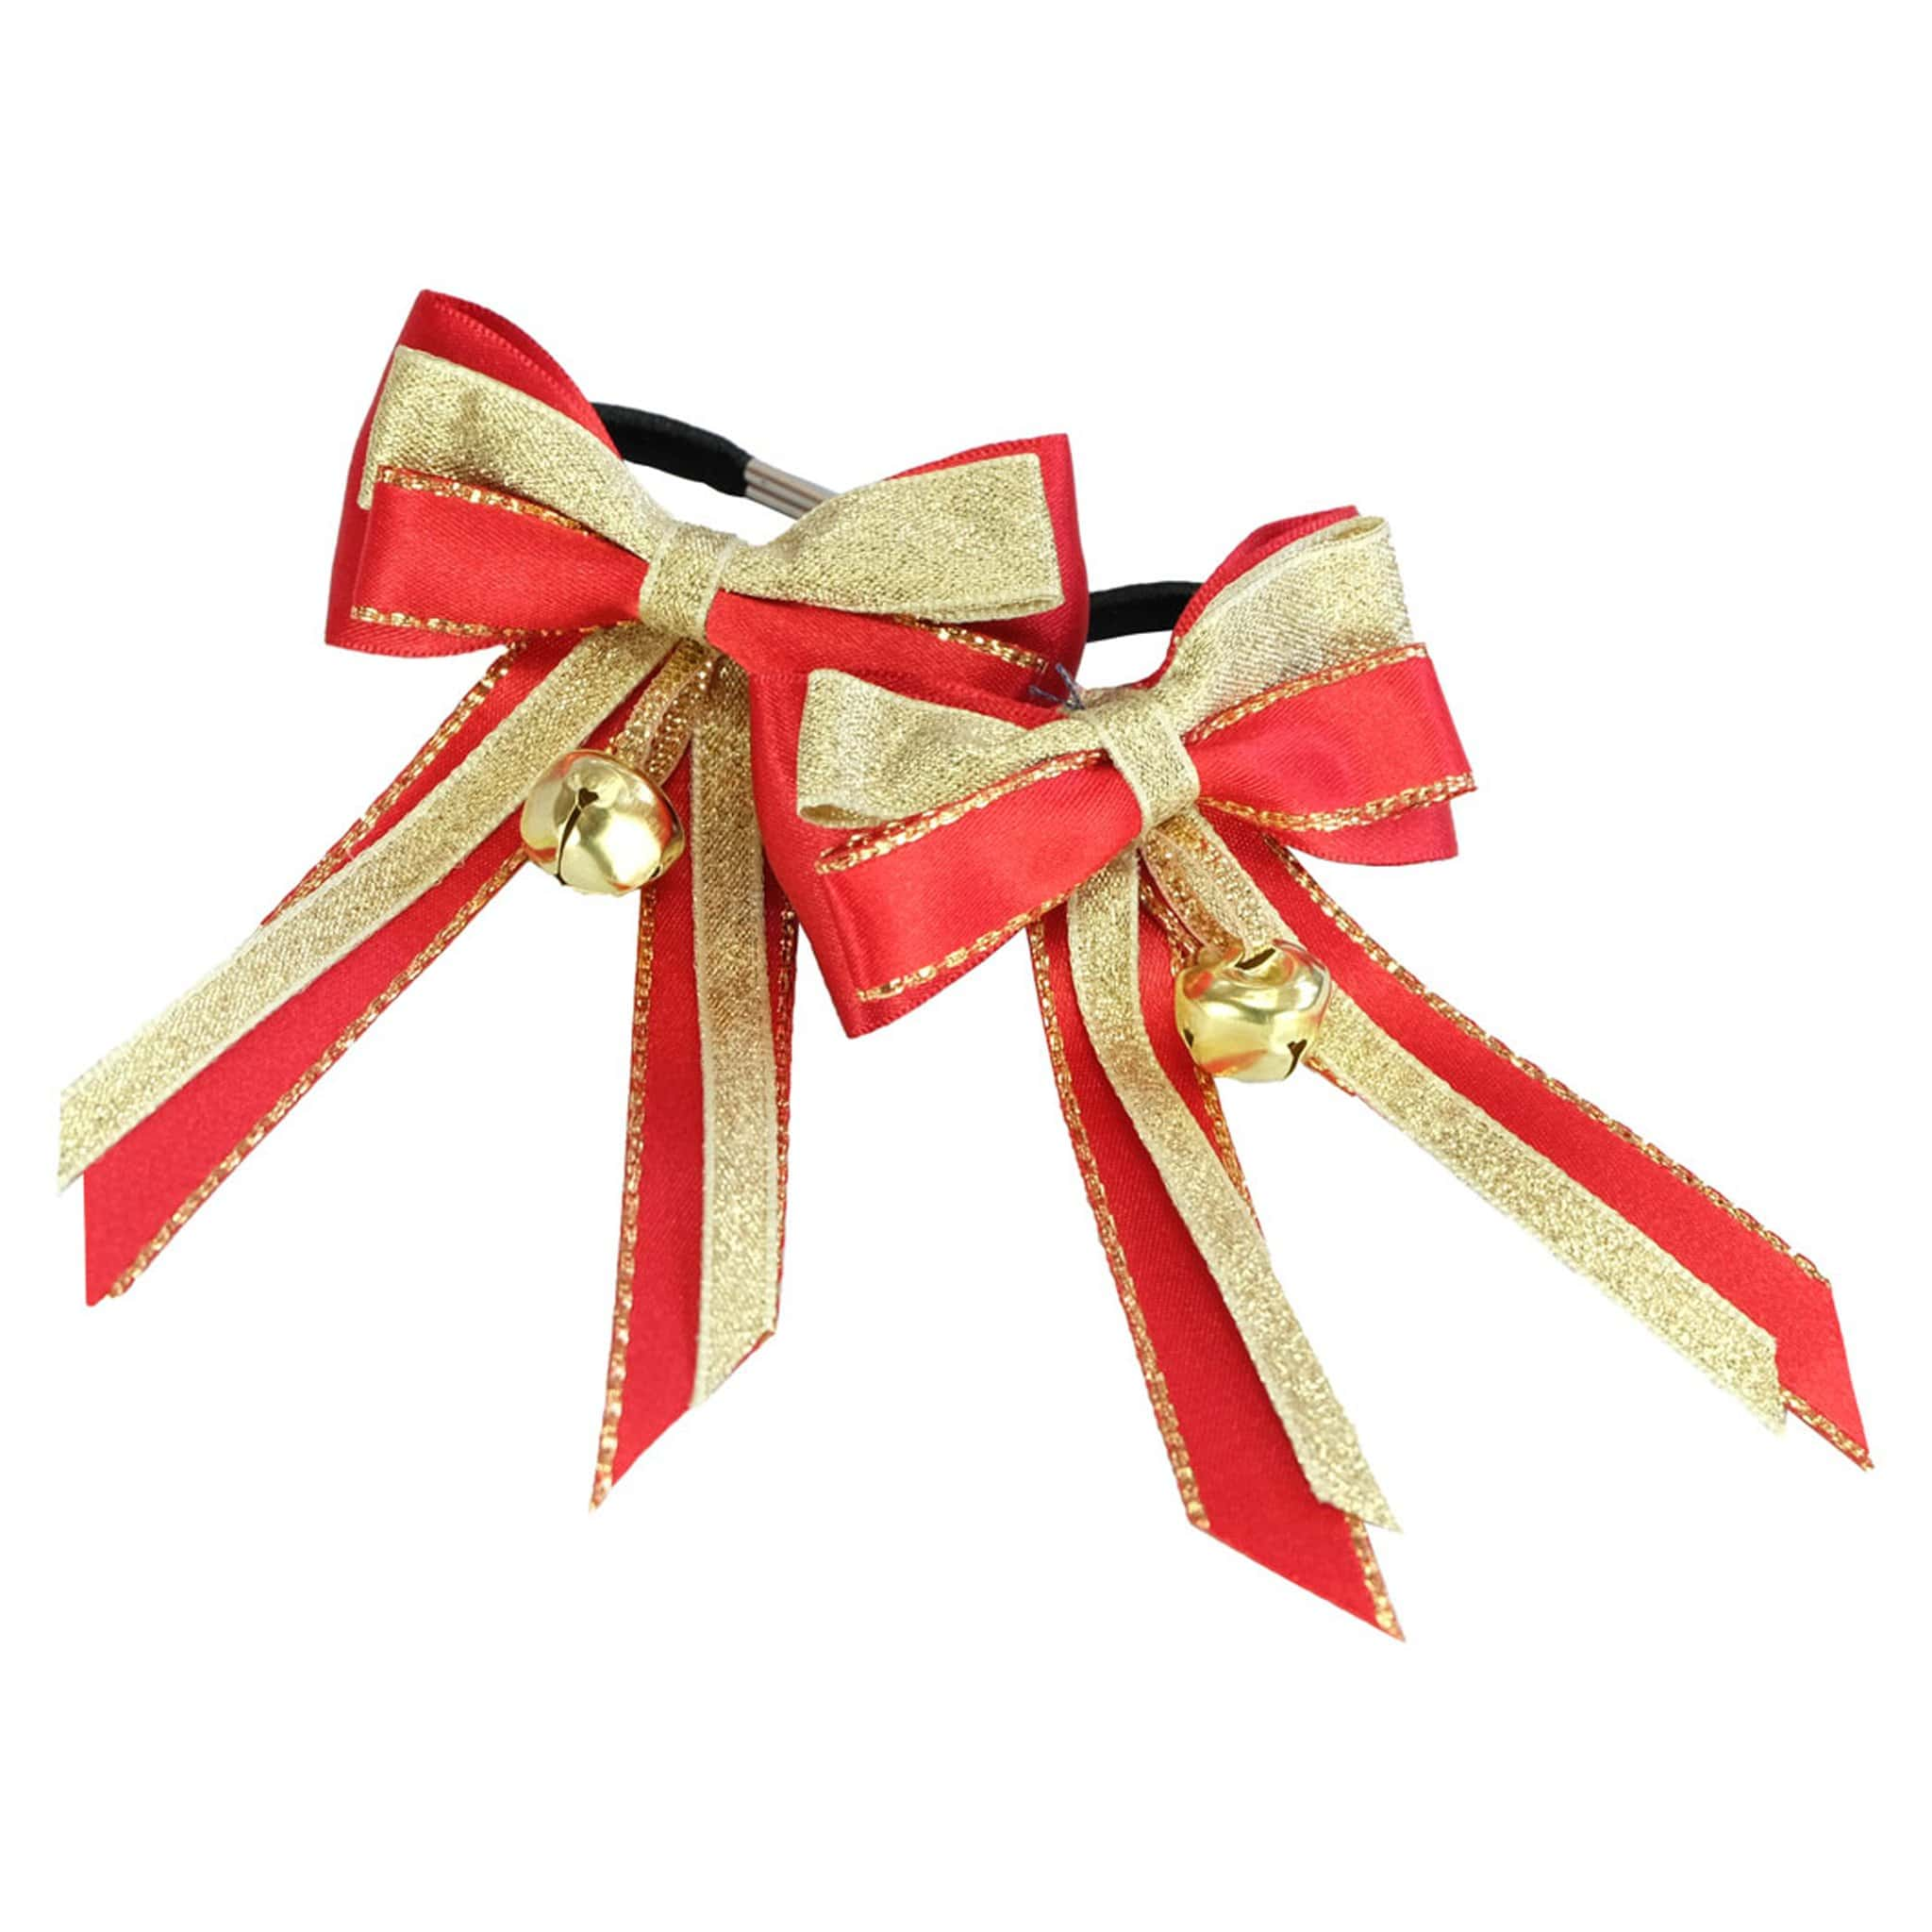 ShowQuest Piggy Bow & Tails with Bells 20912